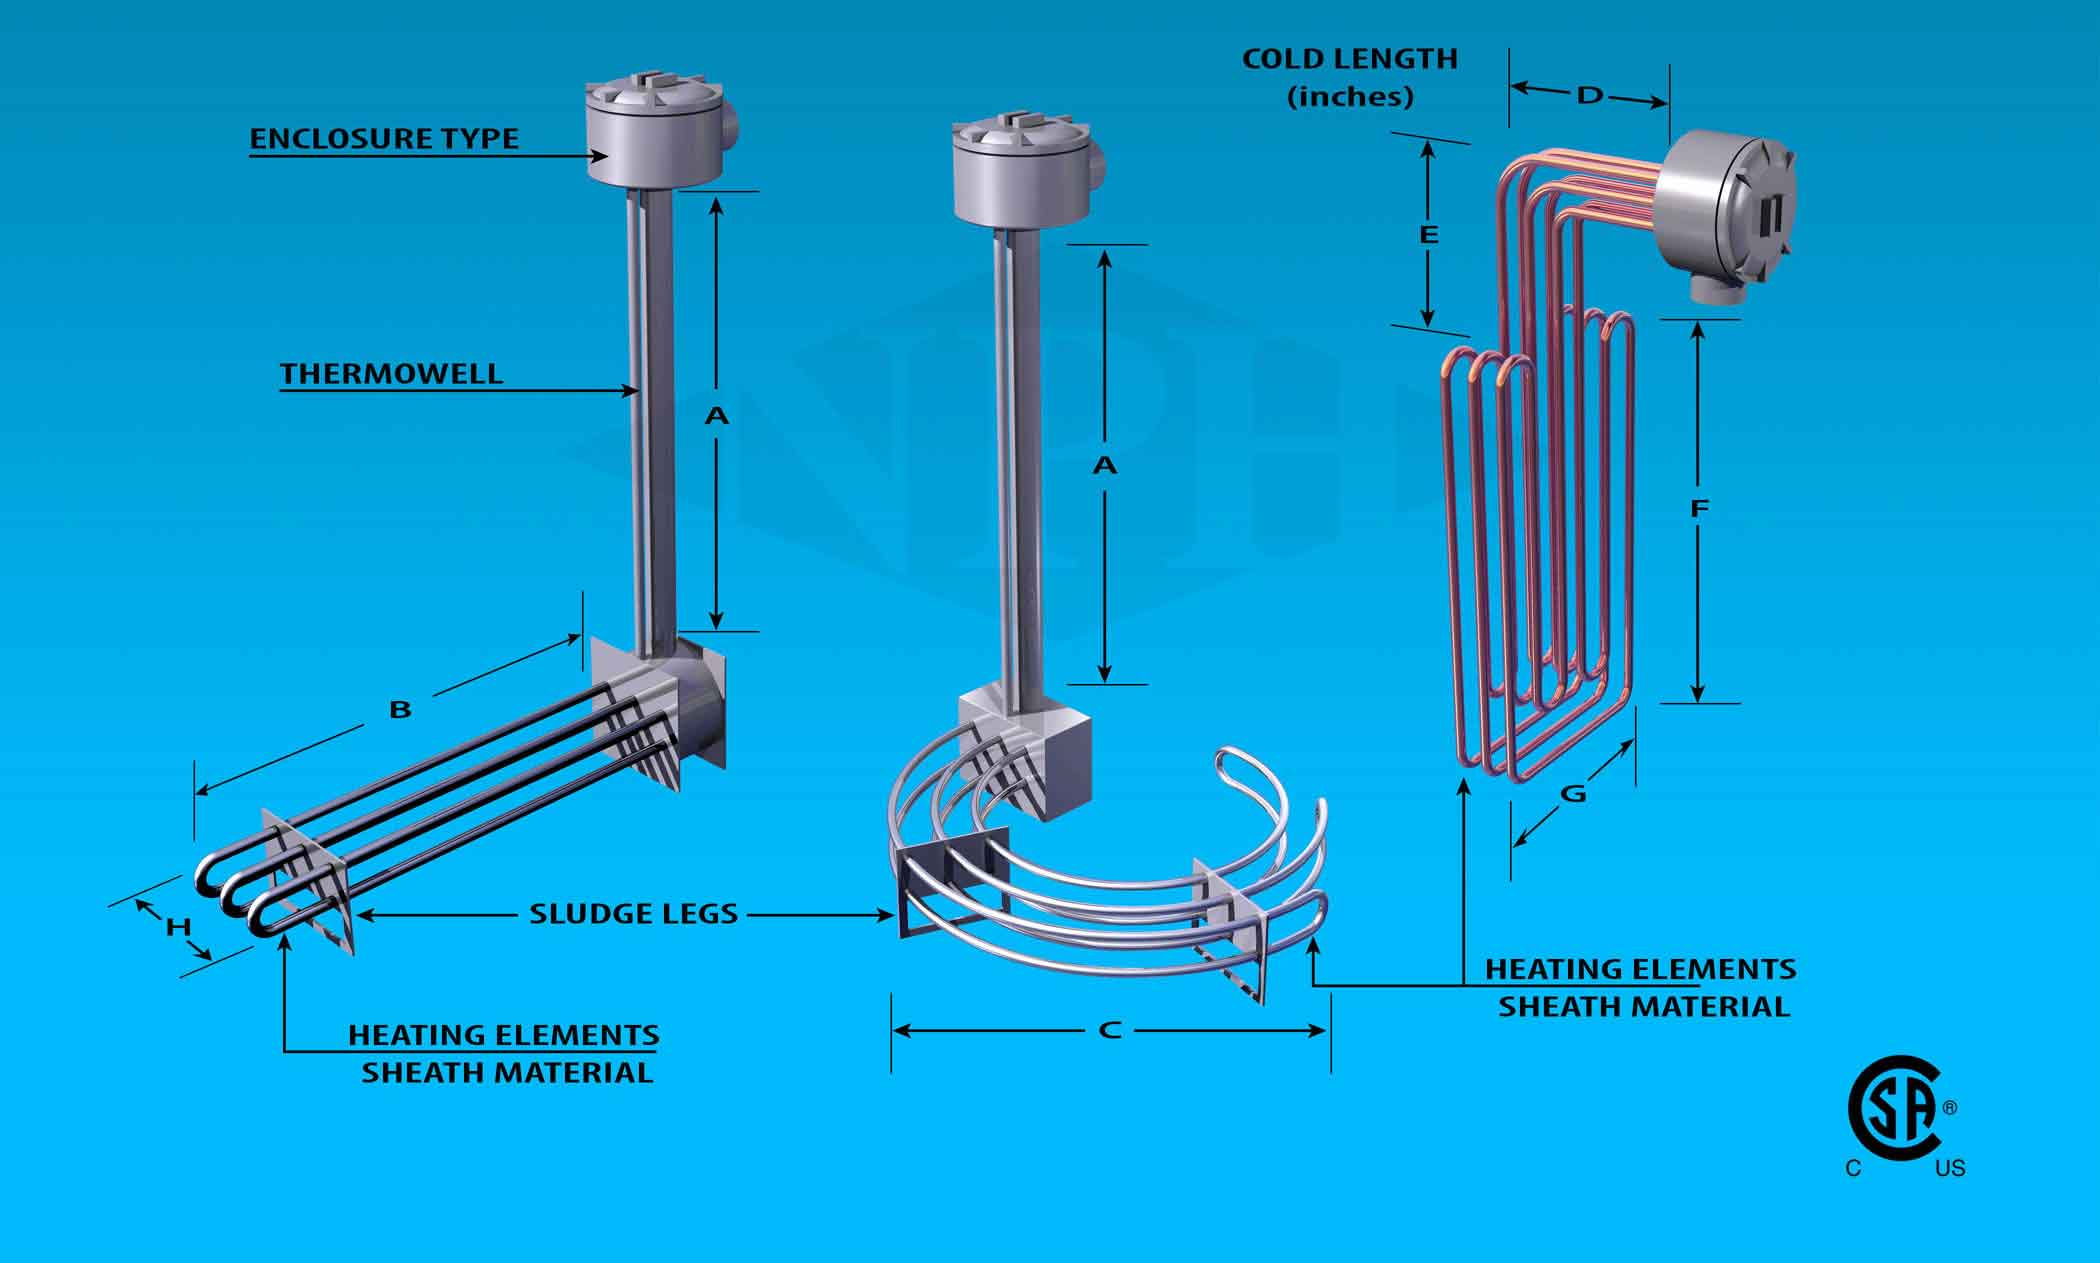 Over The Side Heaters Construction Components-L Shaped and Round Element Design